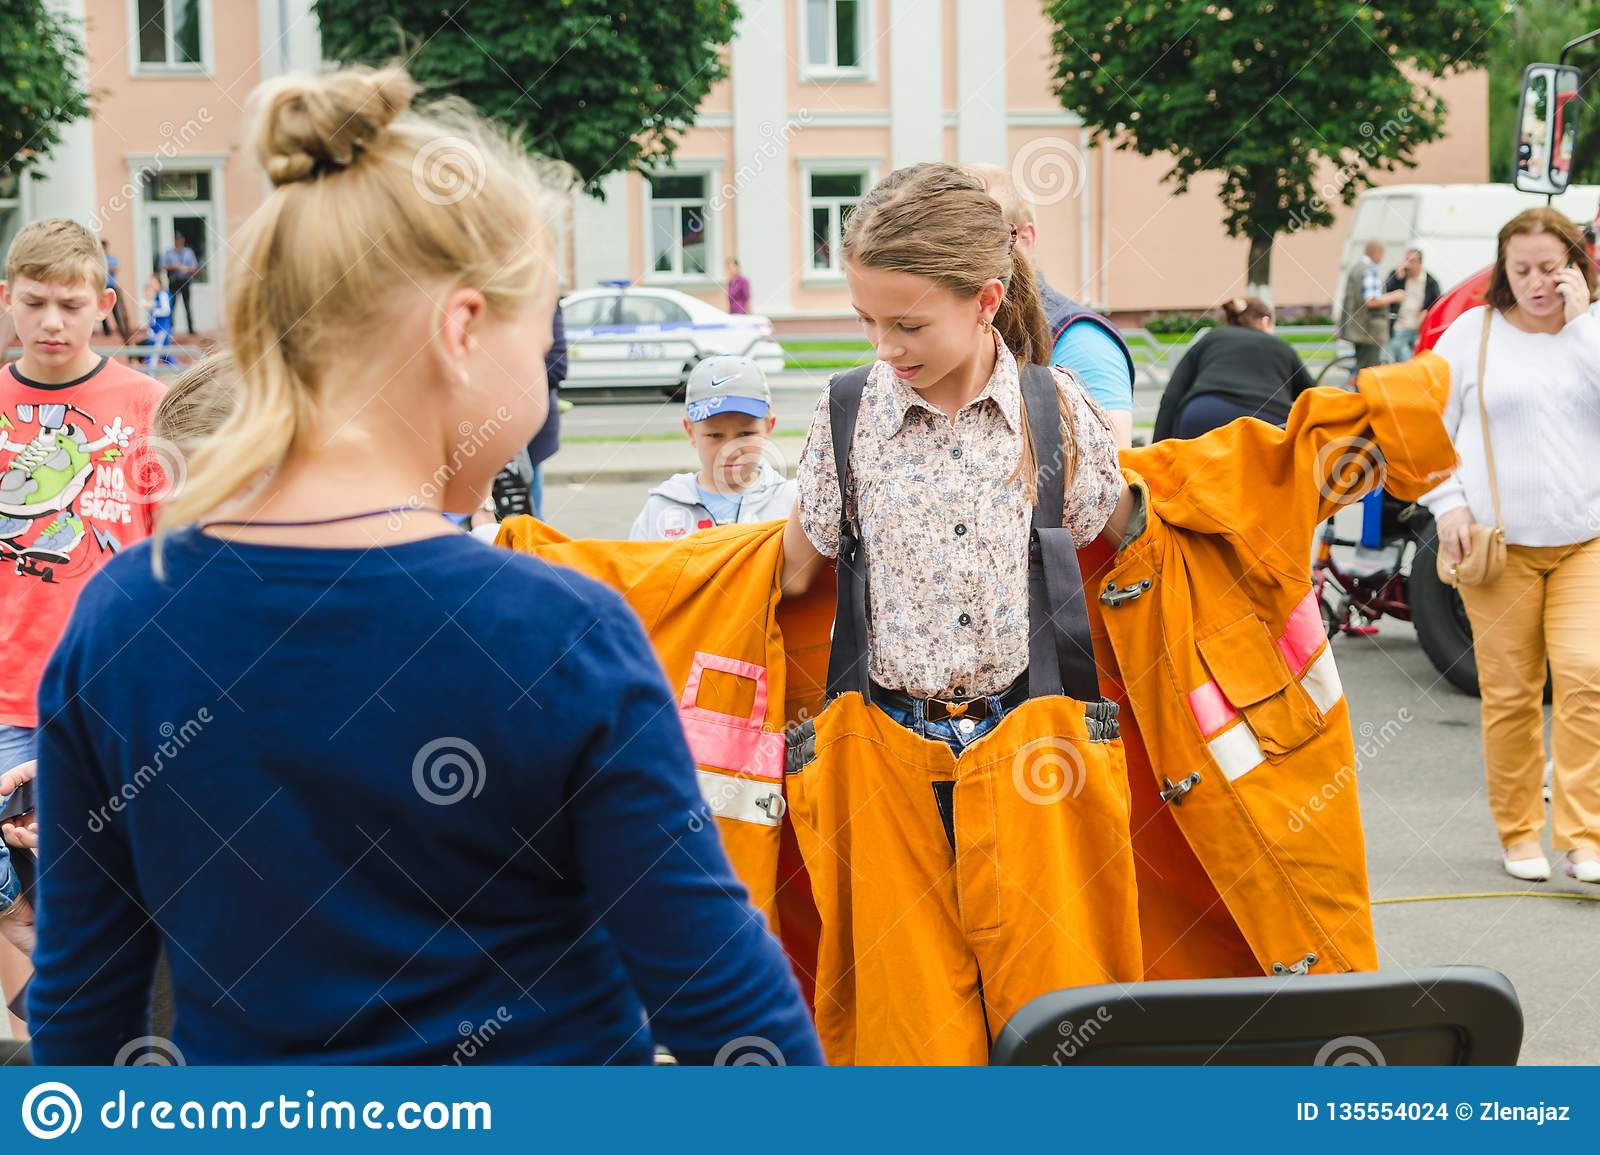 HORKI, BELARUS - JULY 25, 2018: Little blonde girl dresses an orange suit of the rescuer service 112 on a summer day in a crowd